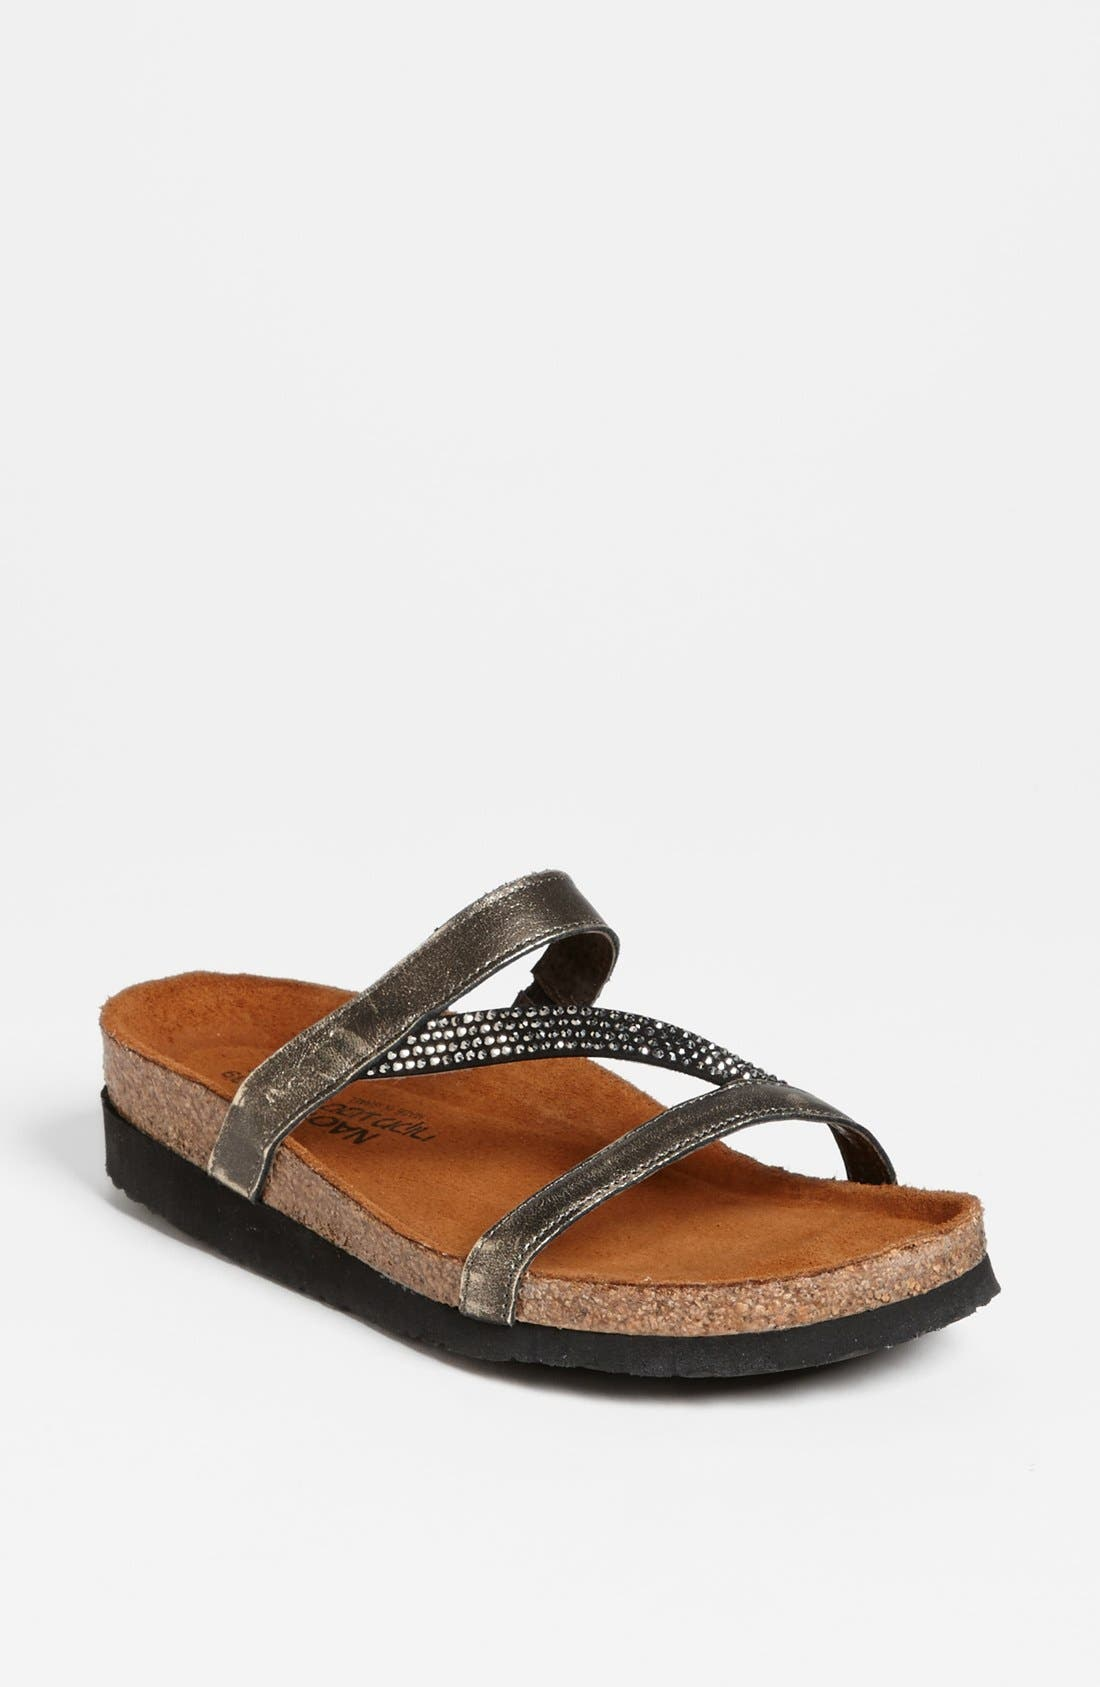 Main Image - Naot 'Hawaii' Sandal